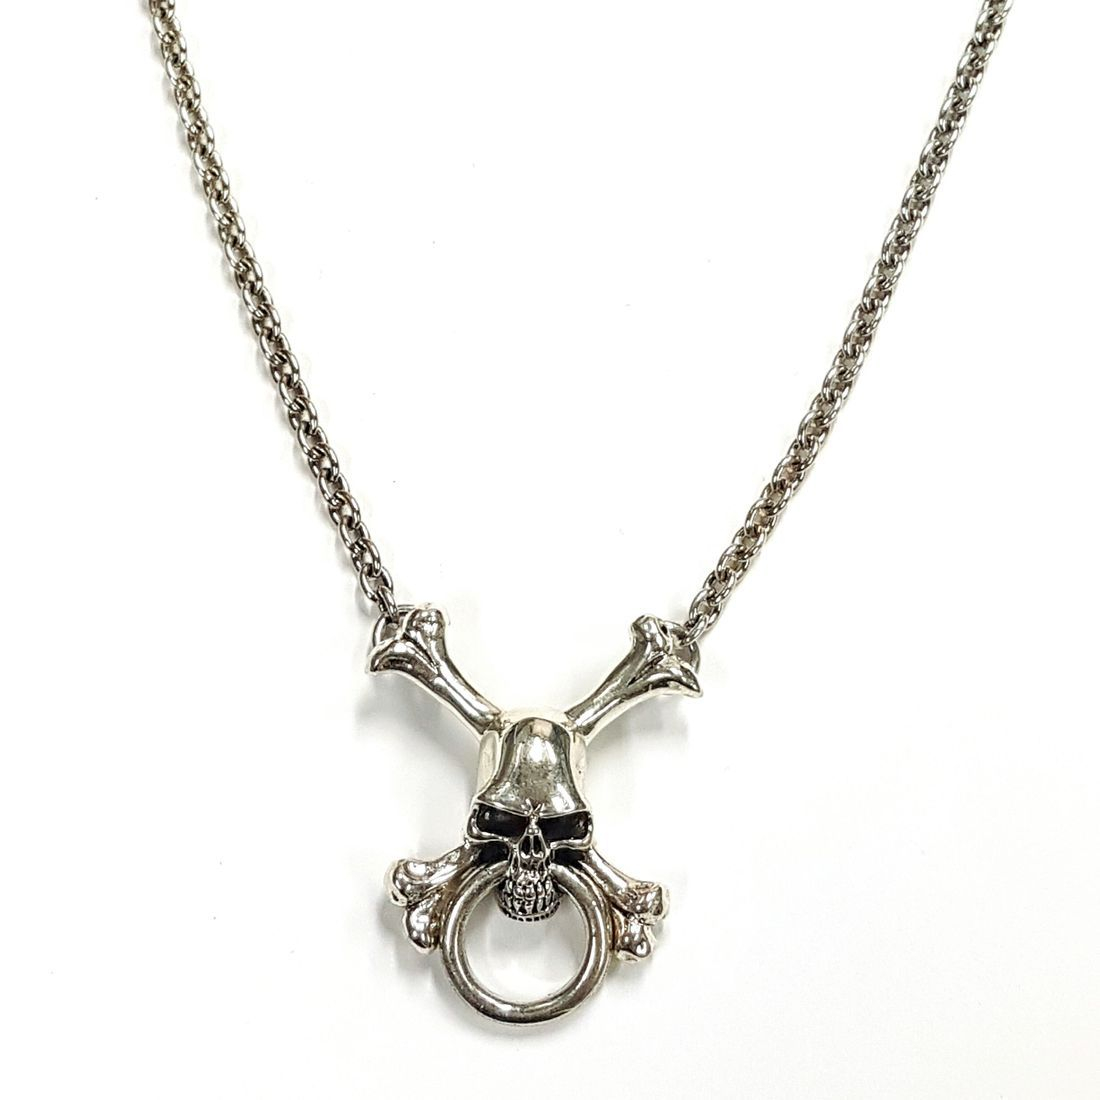 Large Skull & Cross Bones Chain  available at Kazbah online and our Leicester City Centre Shop